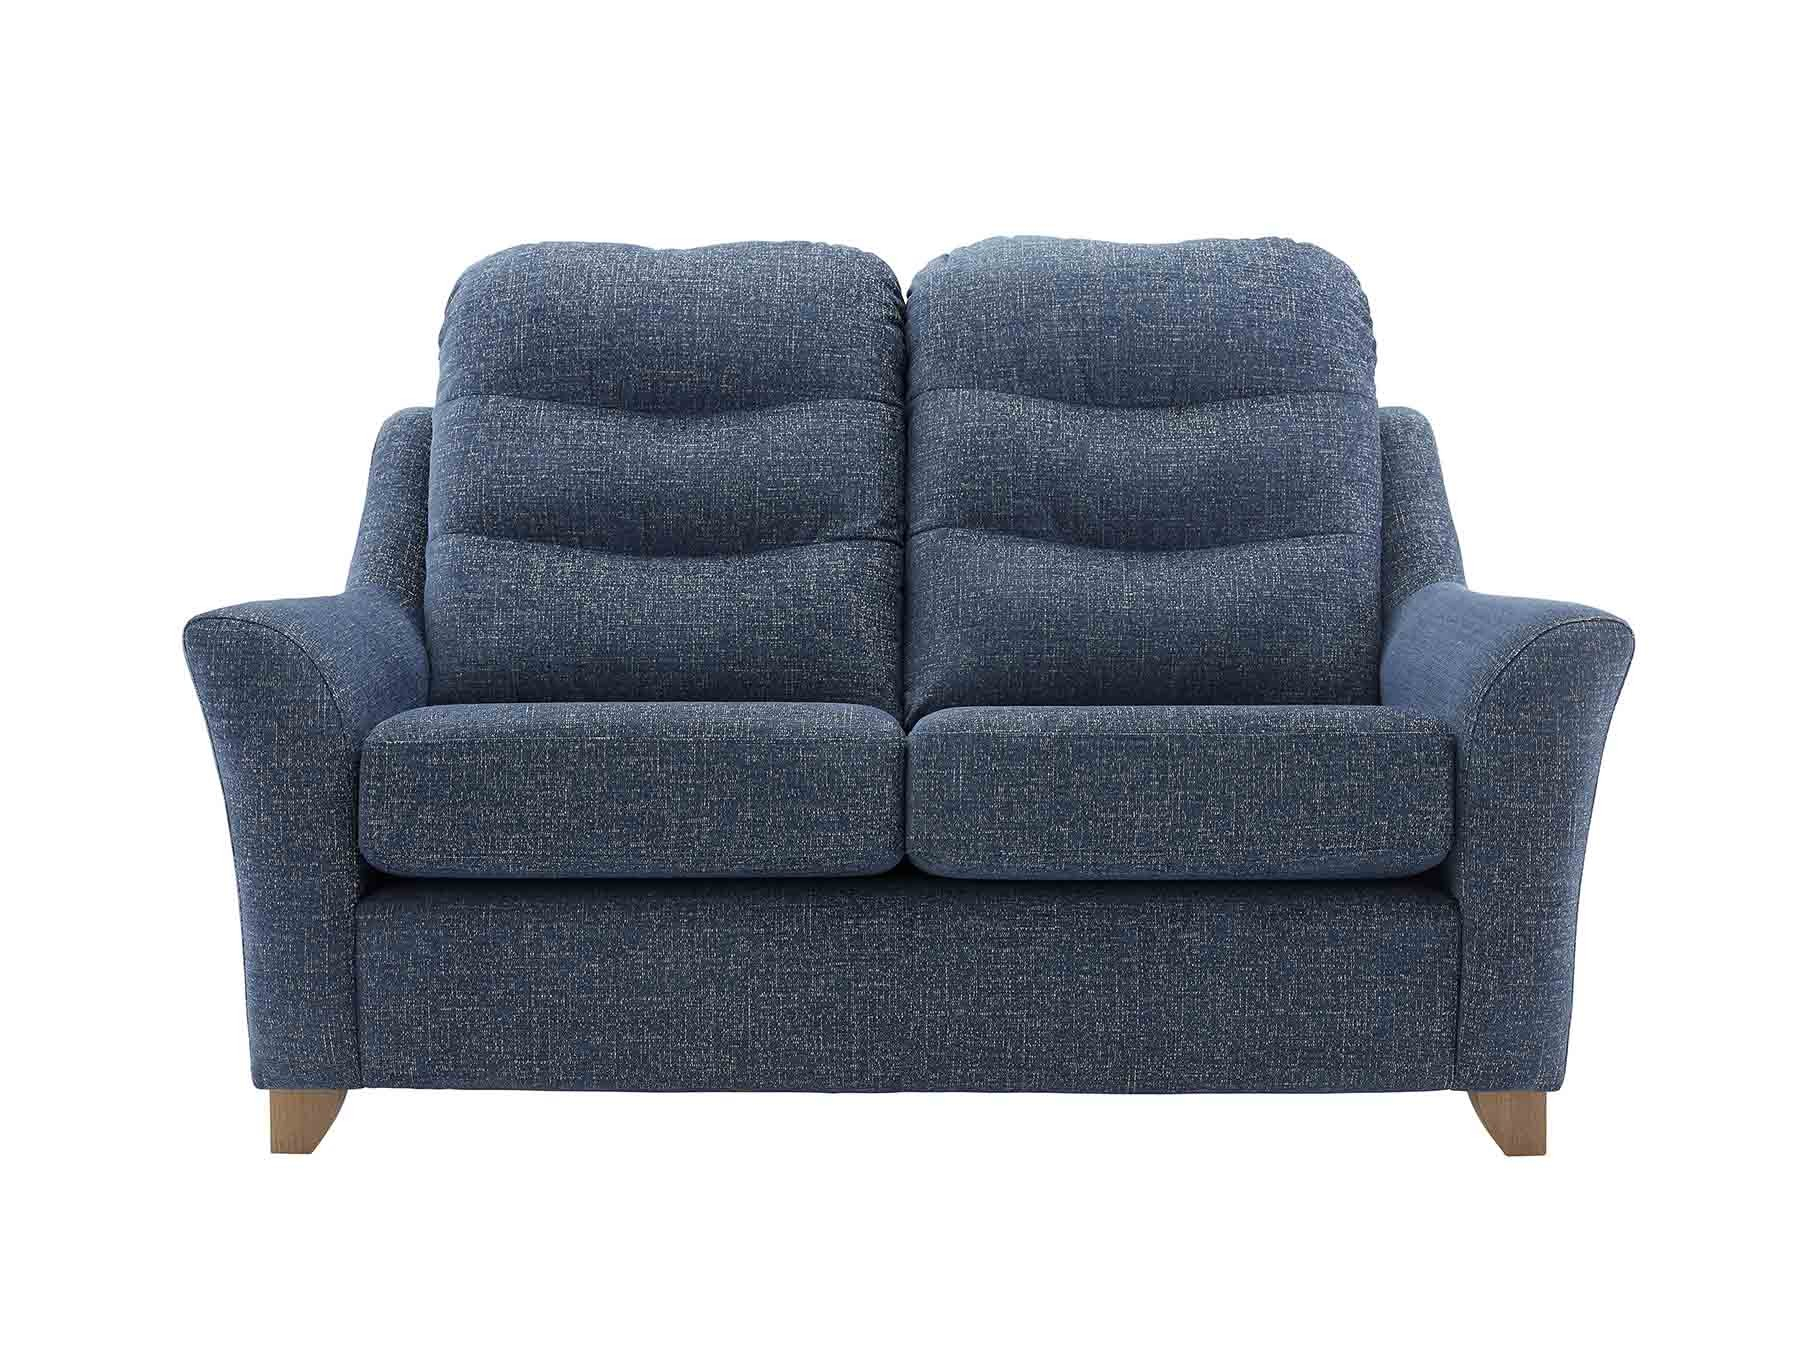 G Plan Tate Leather 2 Seater Sofa   Tr Hayes – Furniture Store, Bath Pertaining To Tate Arm Sofa Chairs (Photo 9 of 20)